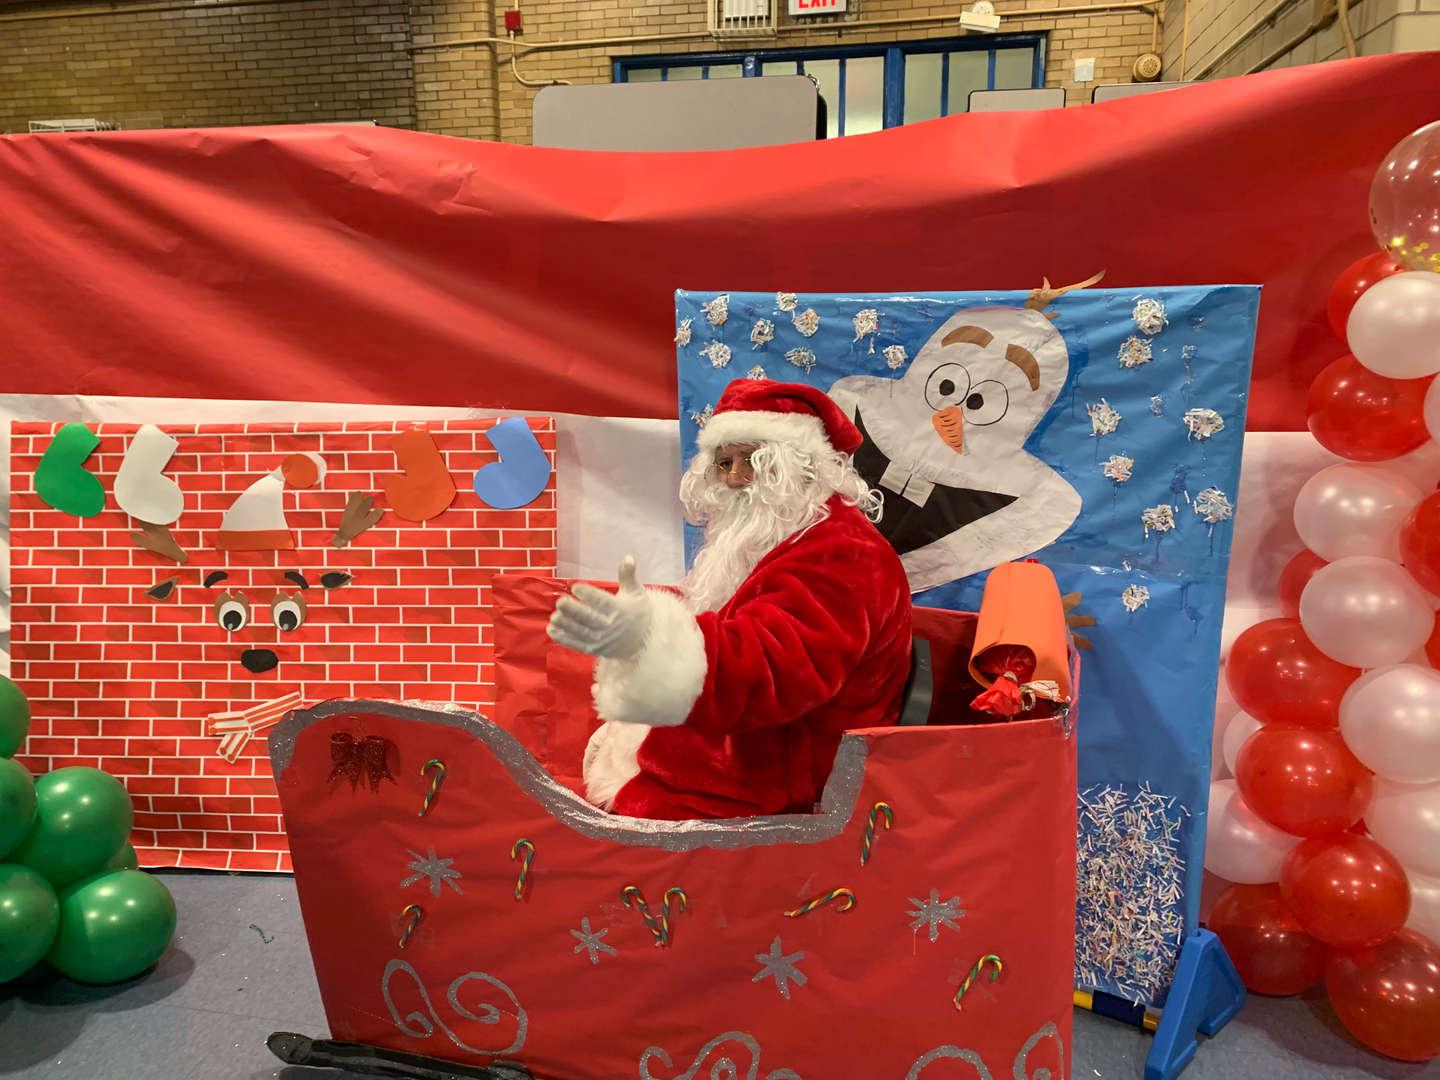 Santa beckons to a family in his sleigh